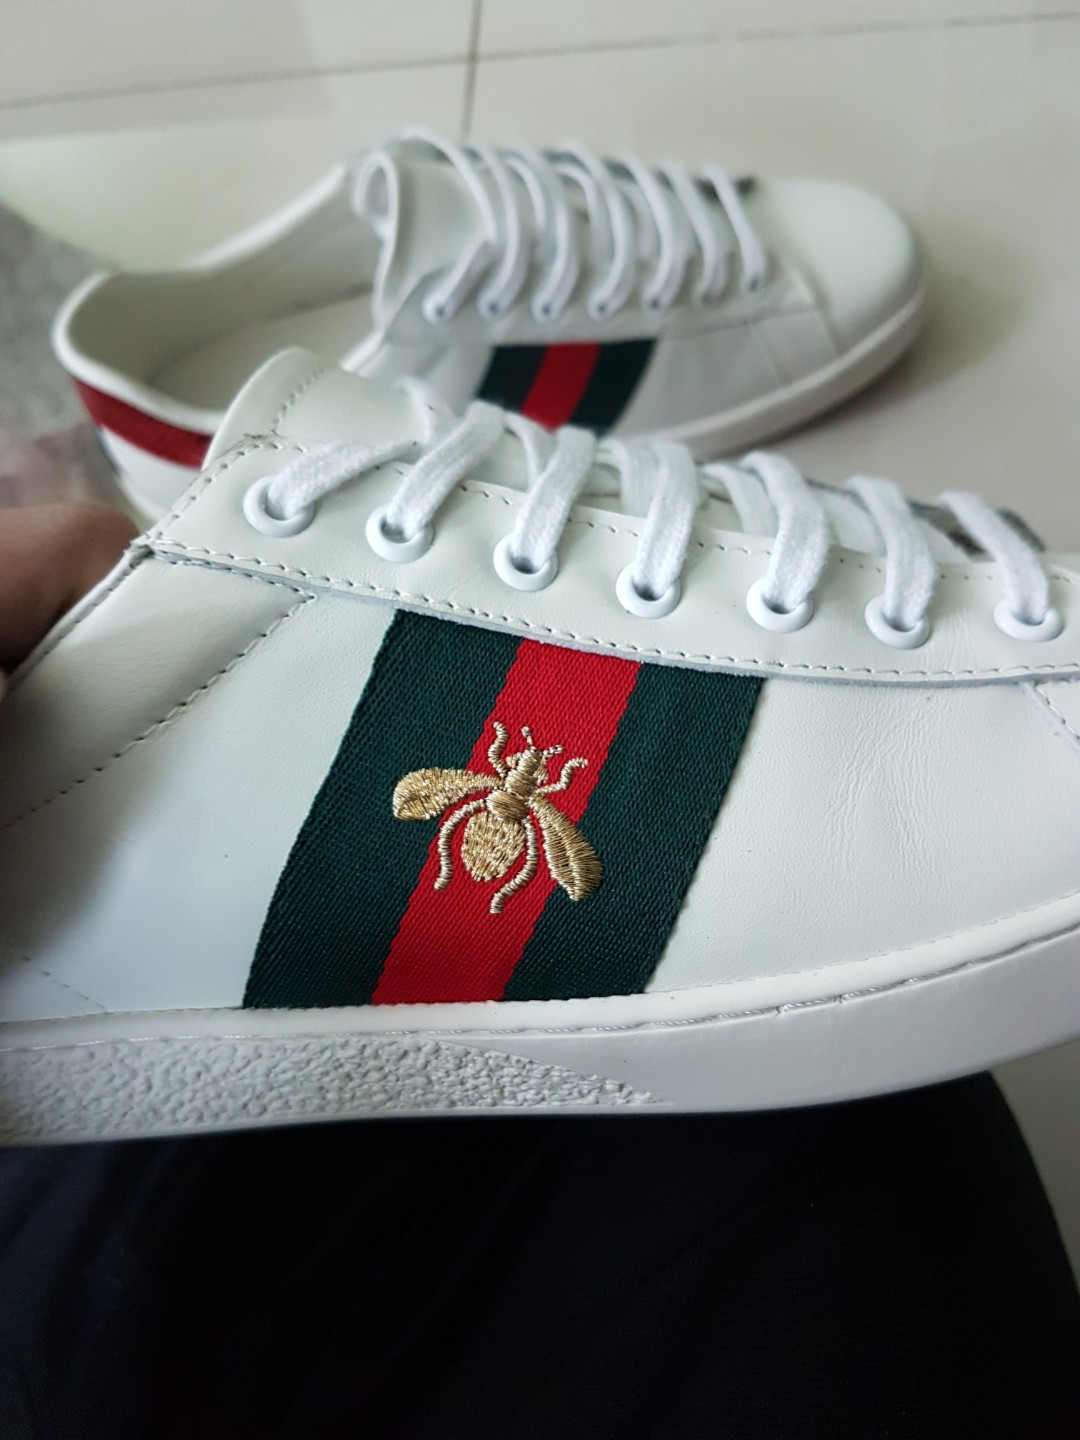 070339a0917e9 Gucci Ace Inspired Sneakers Premium Quality